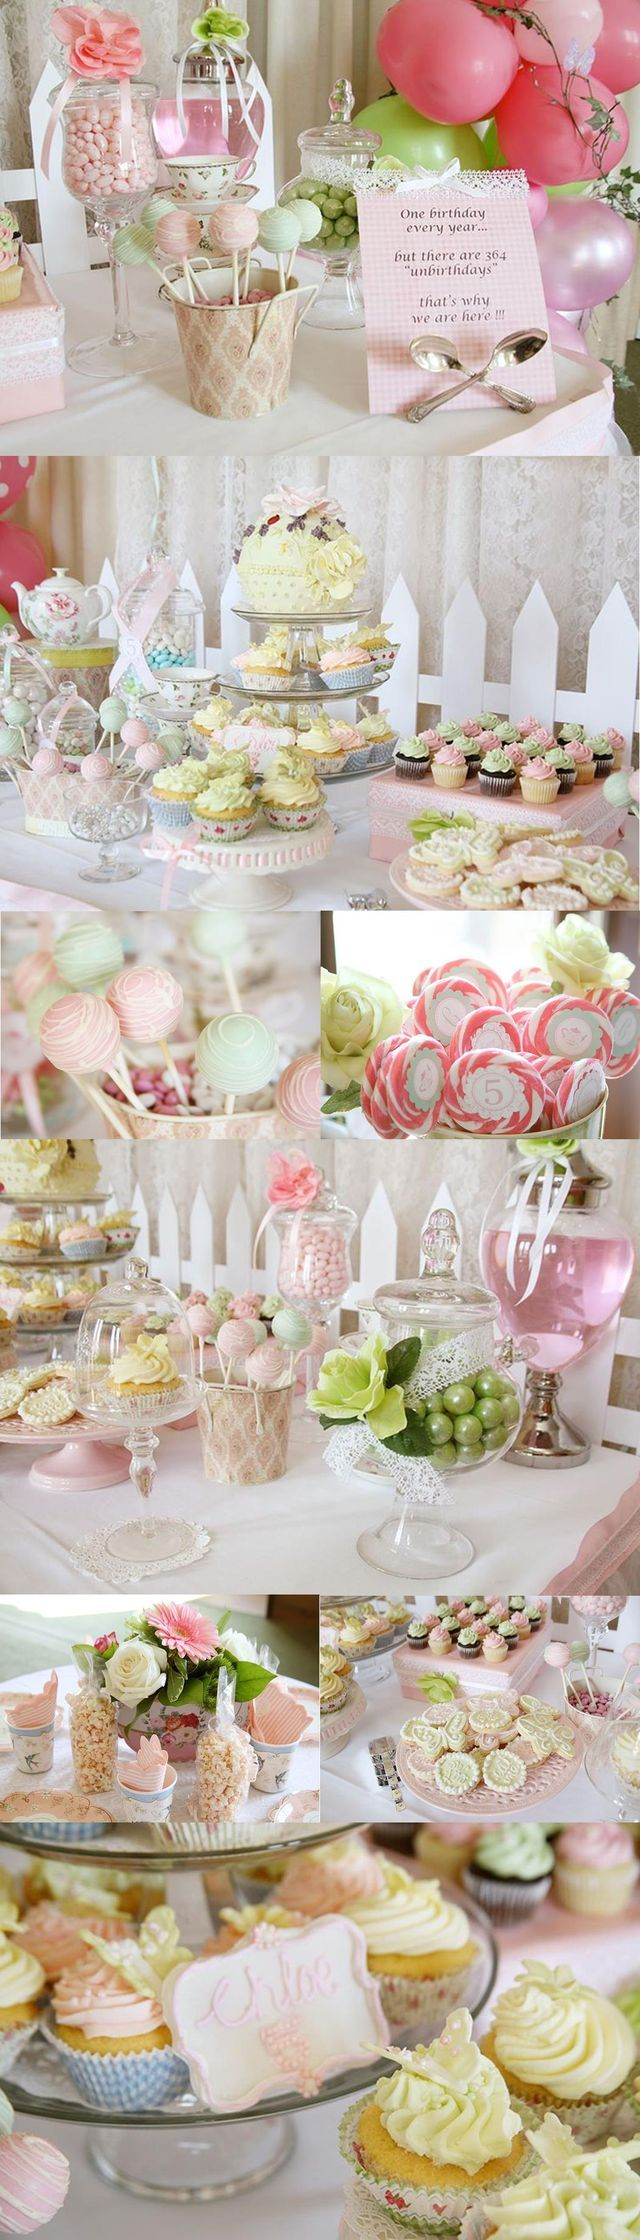 Tea party styled by Enchanted Party